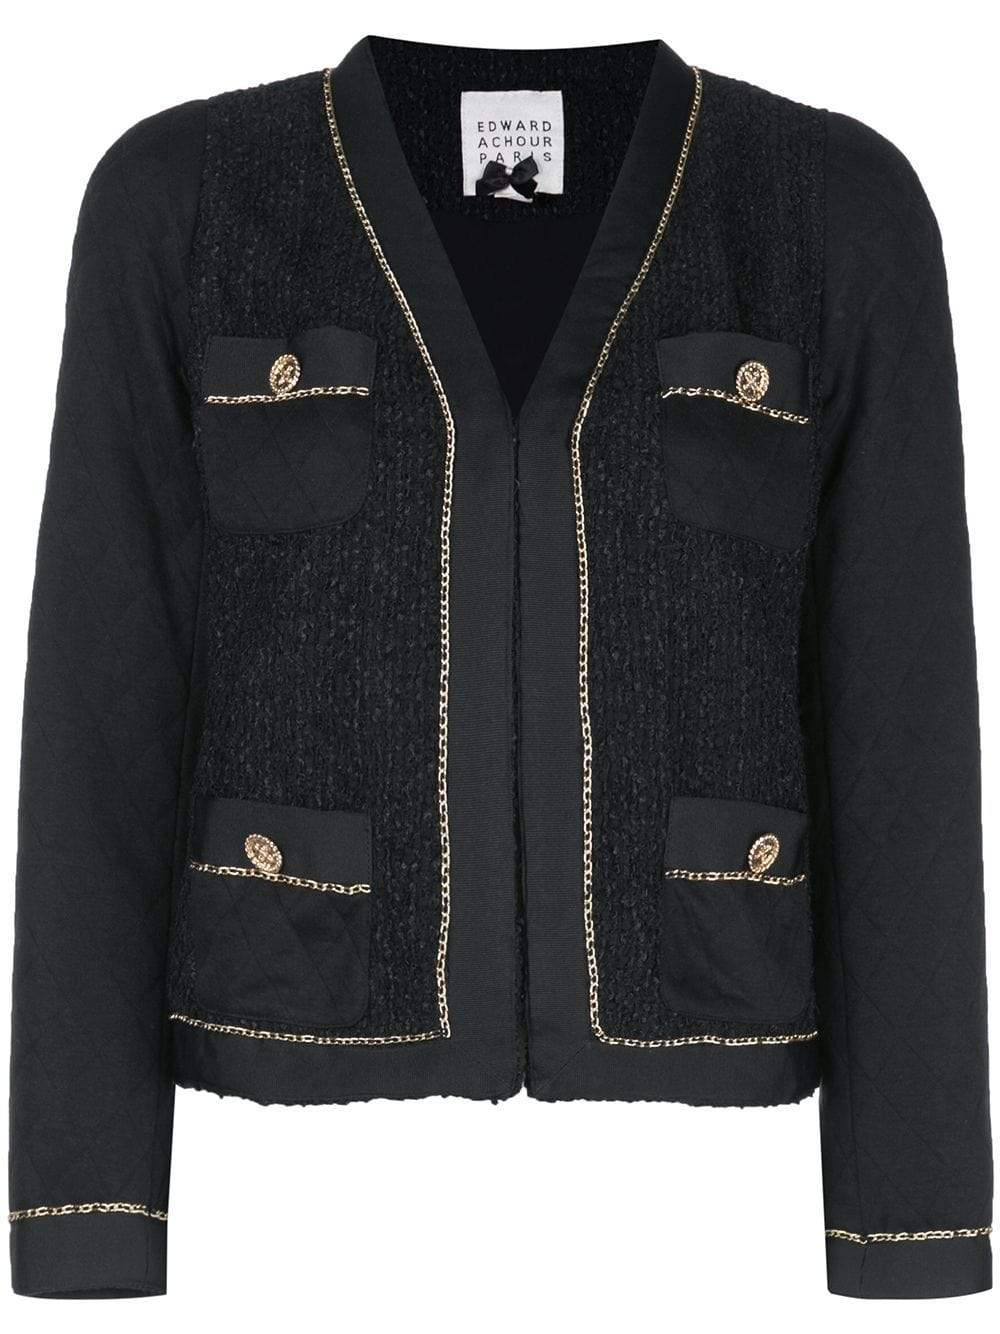 Edward Achour Paris Coats and Jackets Edward Achour Paris Black Jacket With Gold Chain 411029 izzi-of-baslow